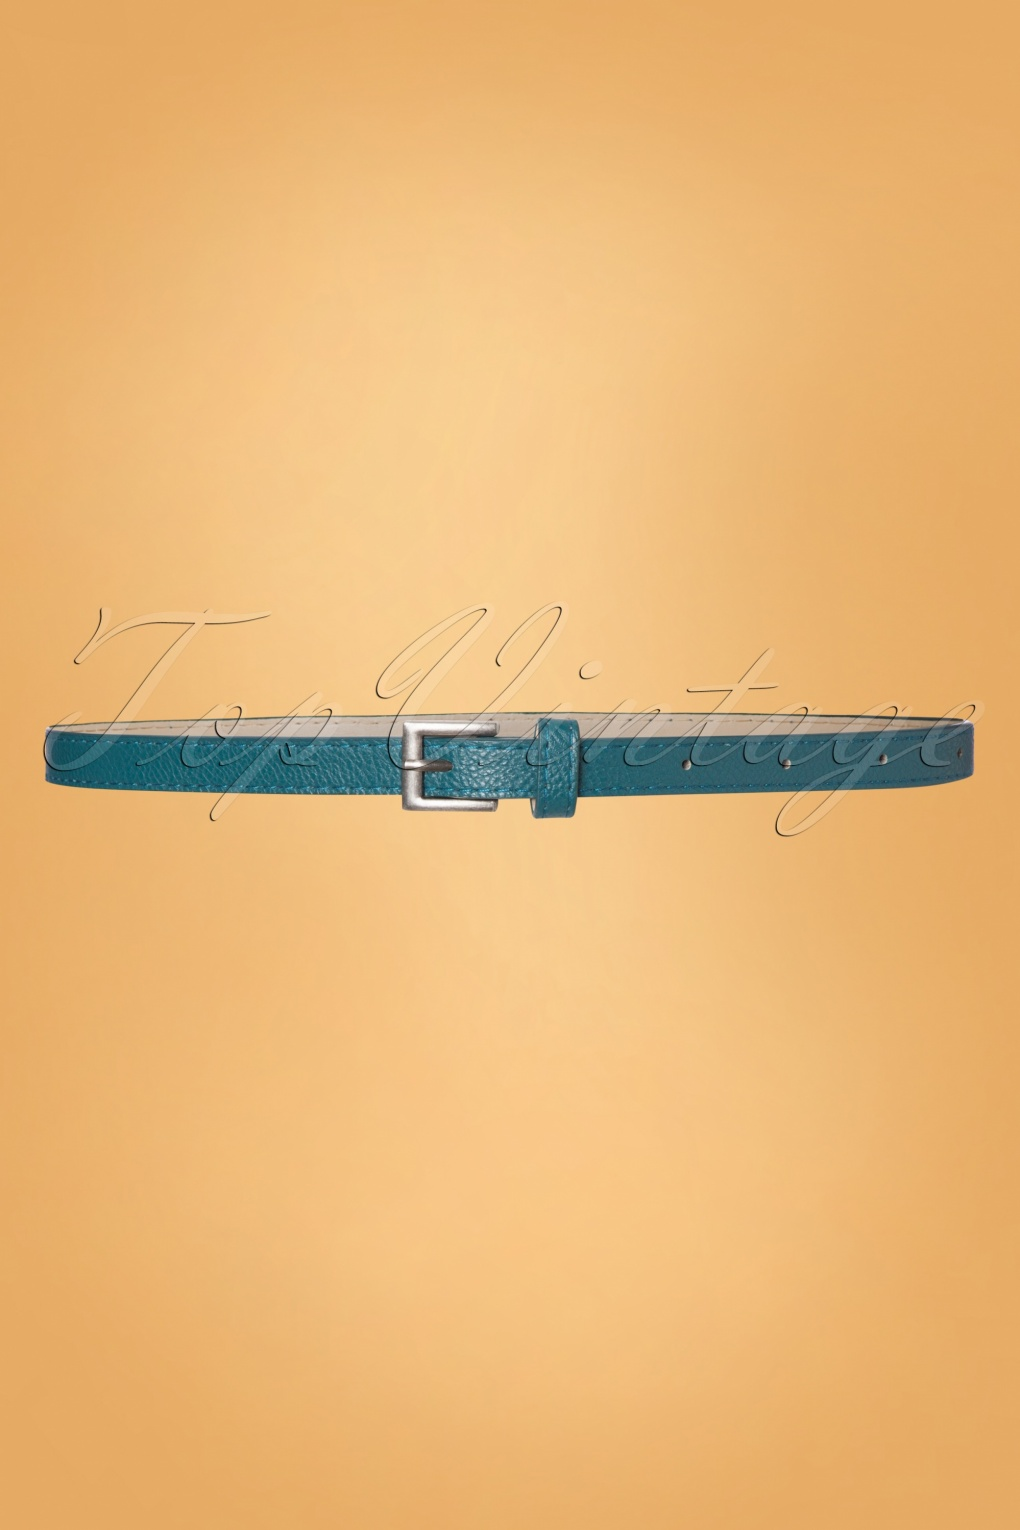 A History of Belts 1920-1960 60s Love Dont Come Easy Belt in Blue £9.81 AT vintagedancer.com